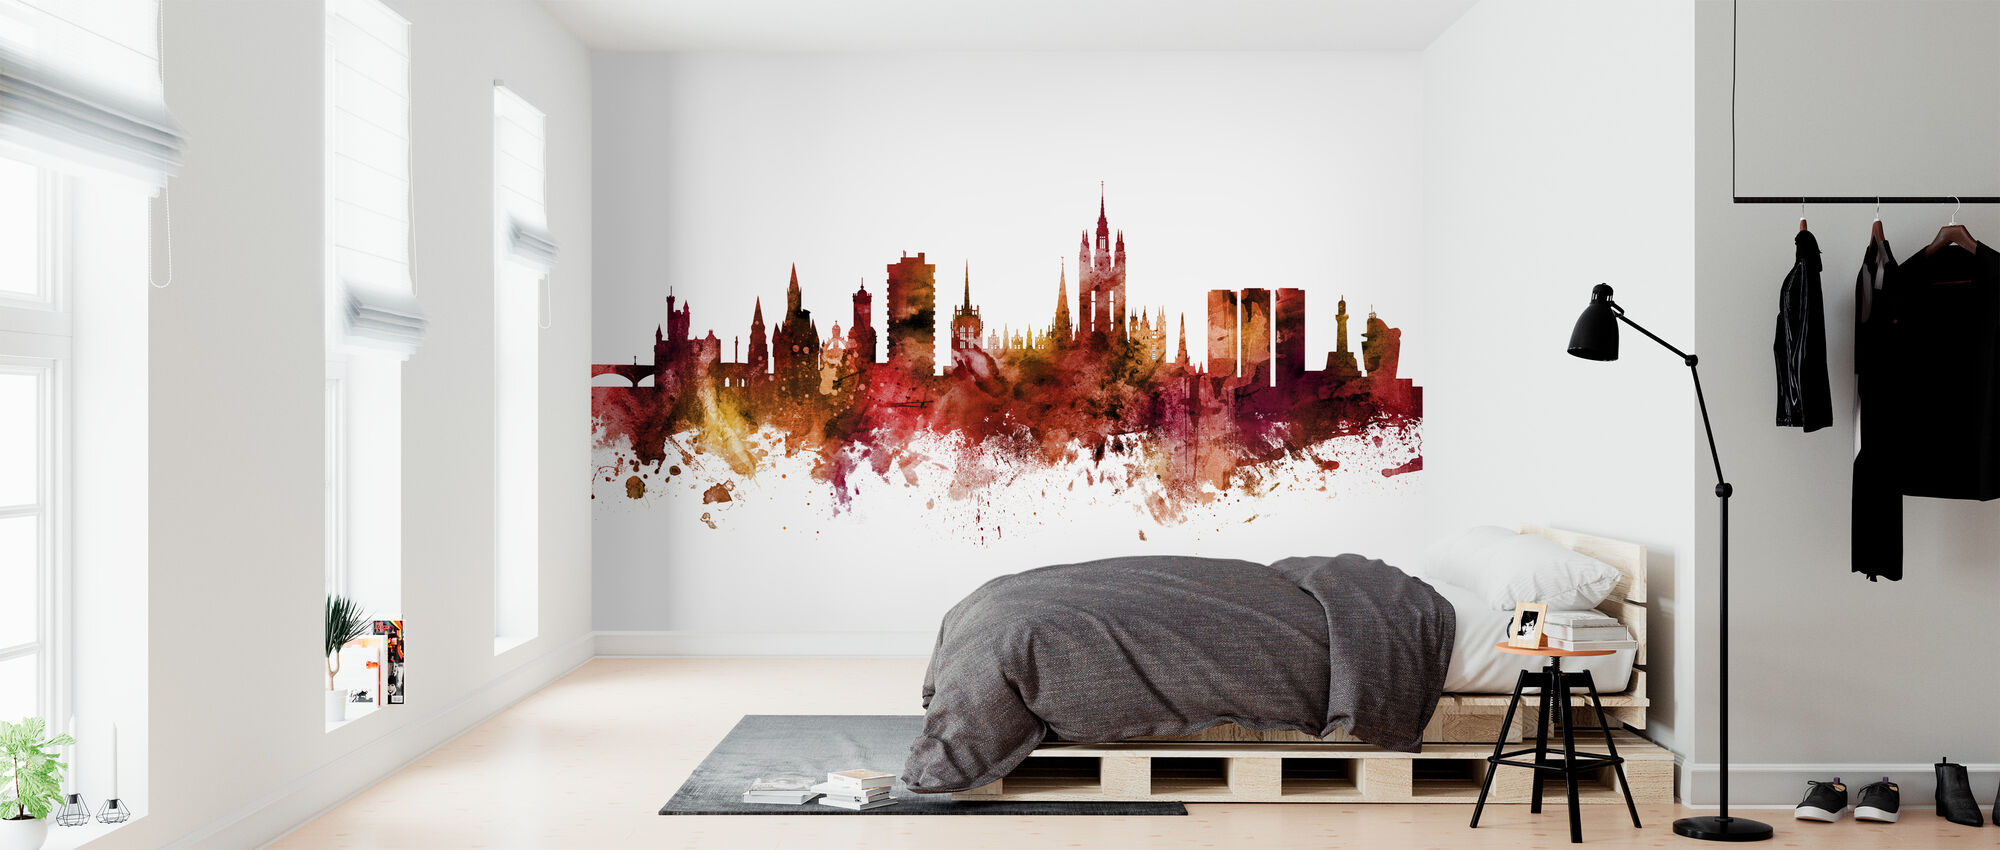 Aberdeen Scotland Skyline - Wallpaper - Bedroom